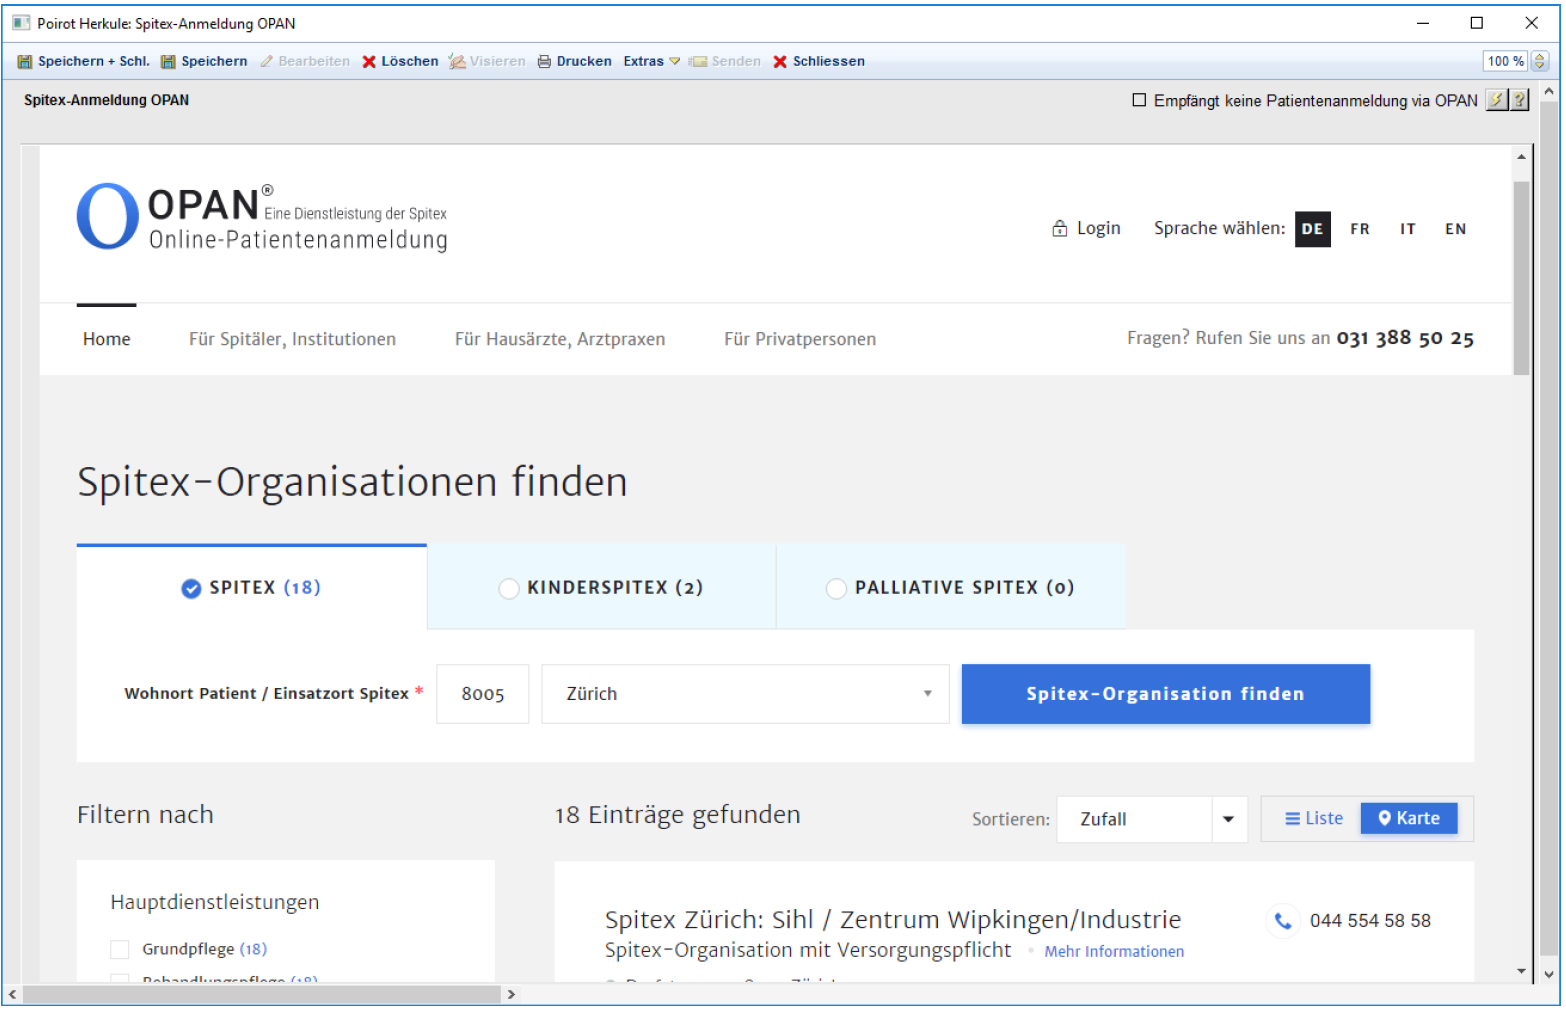 Integrated, embedded querying of the OPAN website in the Spitex registration in KISIM